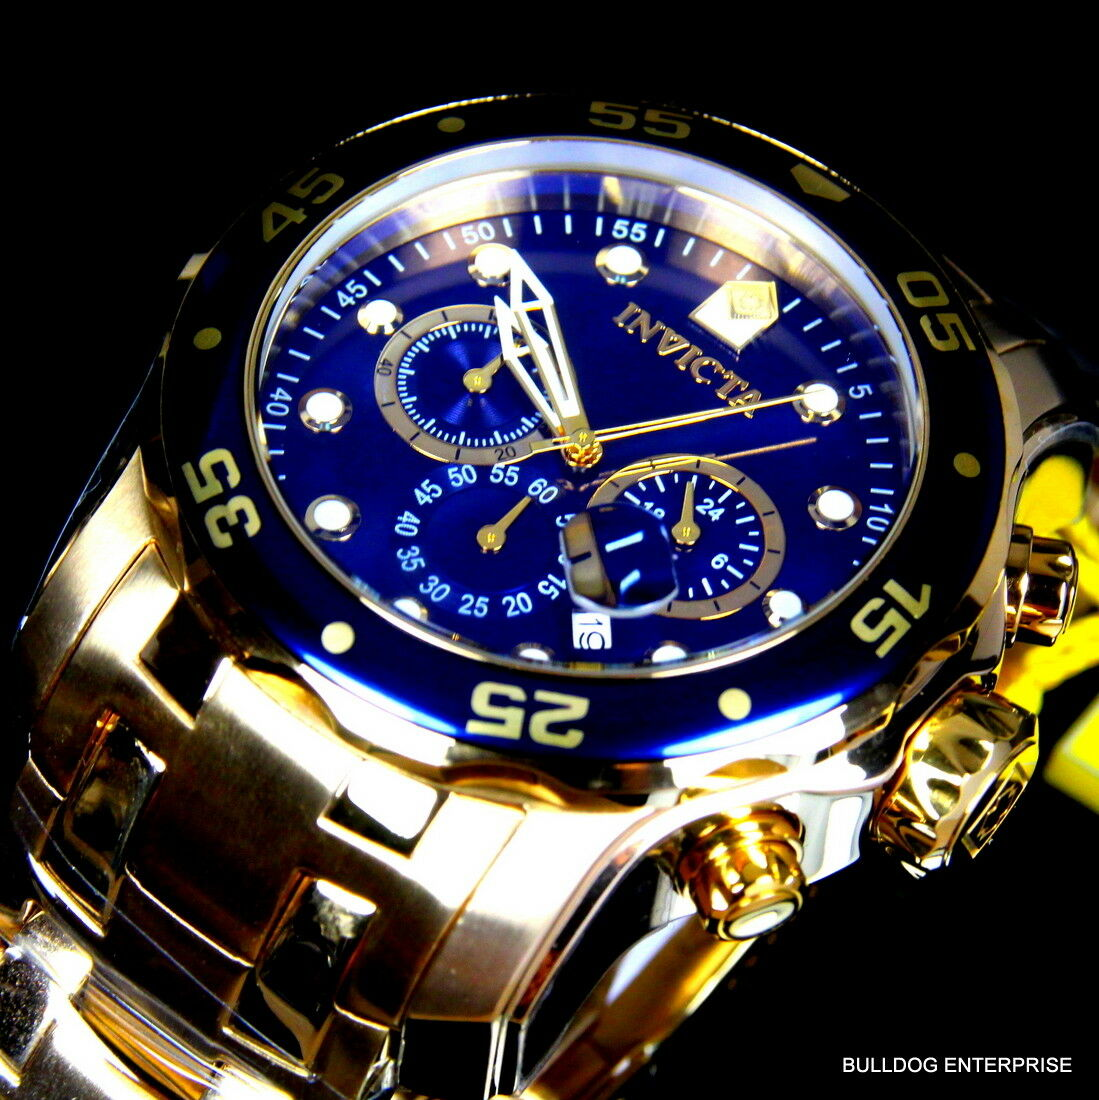 $114.99 - Mens Invicta Pro Diver Scuba Blue 18kt Gold Plated Steel Chronograph Watch New